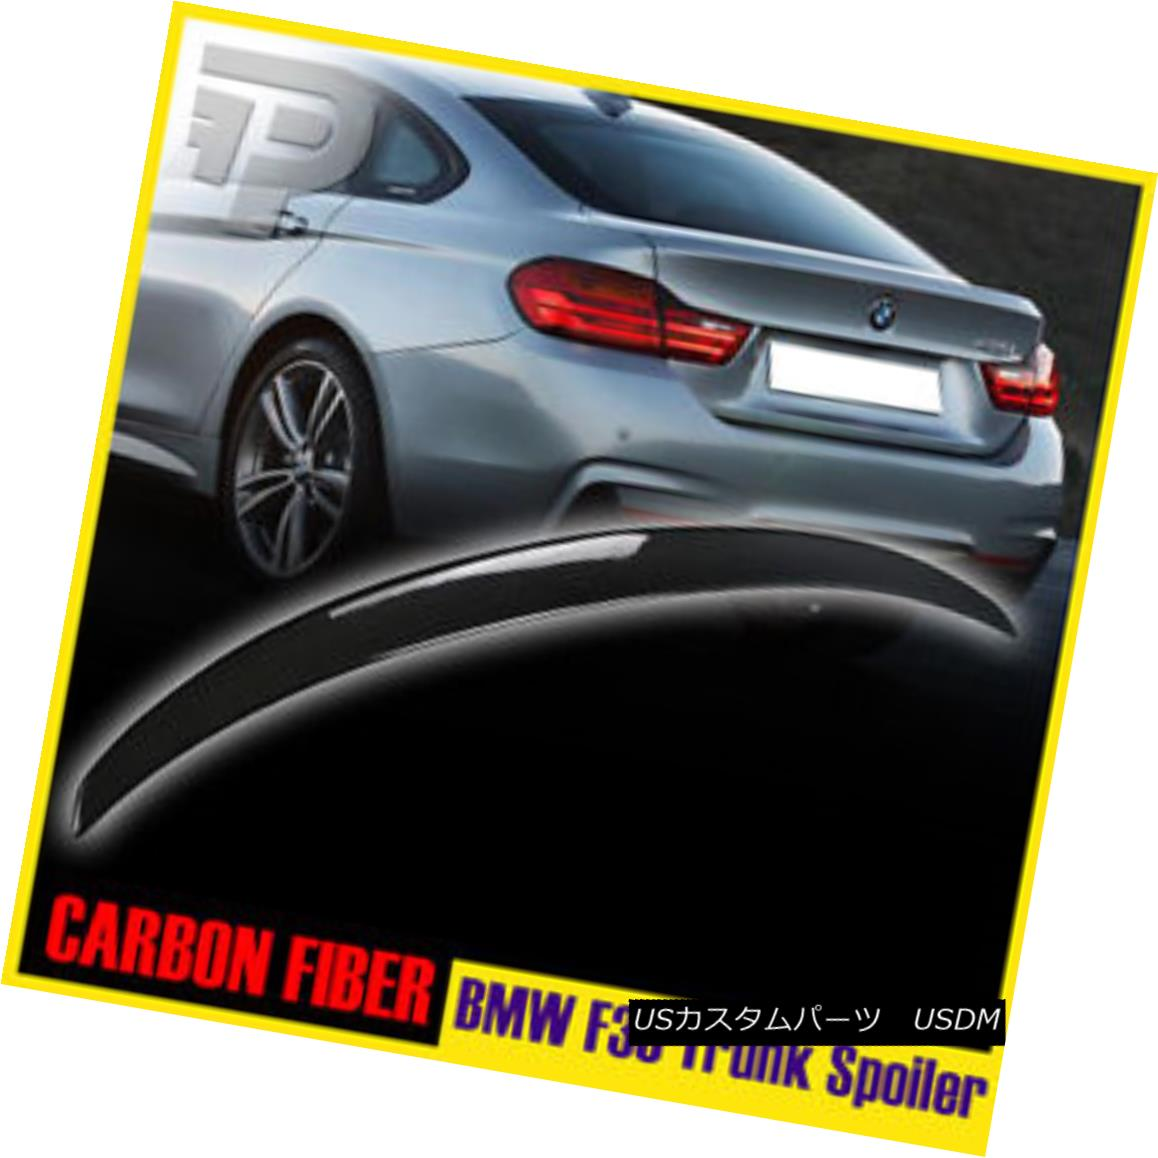 エアロパーツ CARBON FIBER BMW F36 GRAN COUPE PERFORMANCE P-TYPE REAR TRUNK SPOILER ABS▼ カーボンファイバーBMW F36 GRAN COUPE PERFORMANCE P-TYPEリアトランクスポイラーABS?